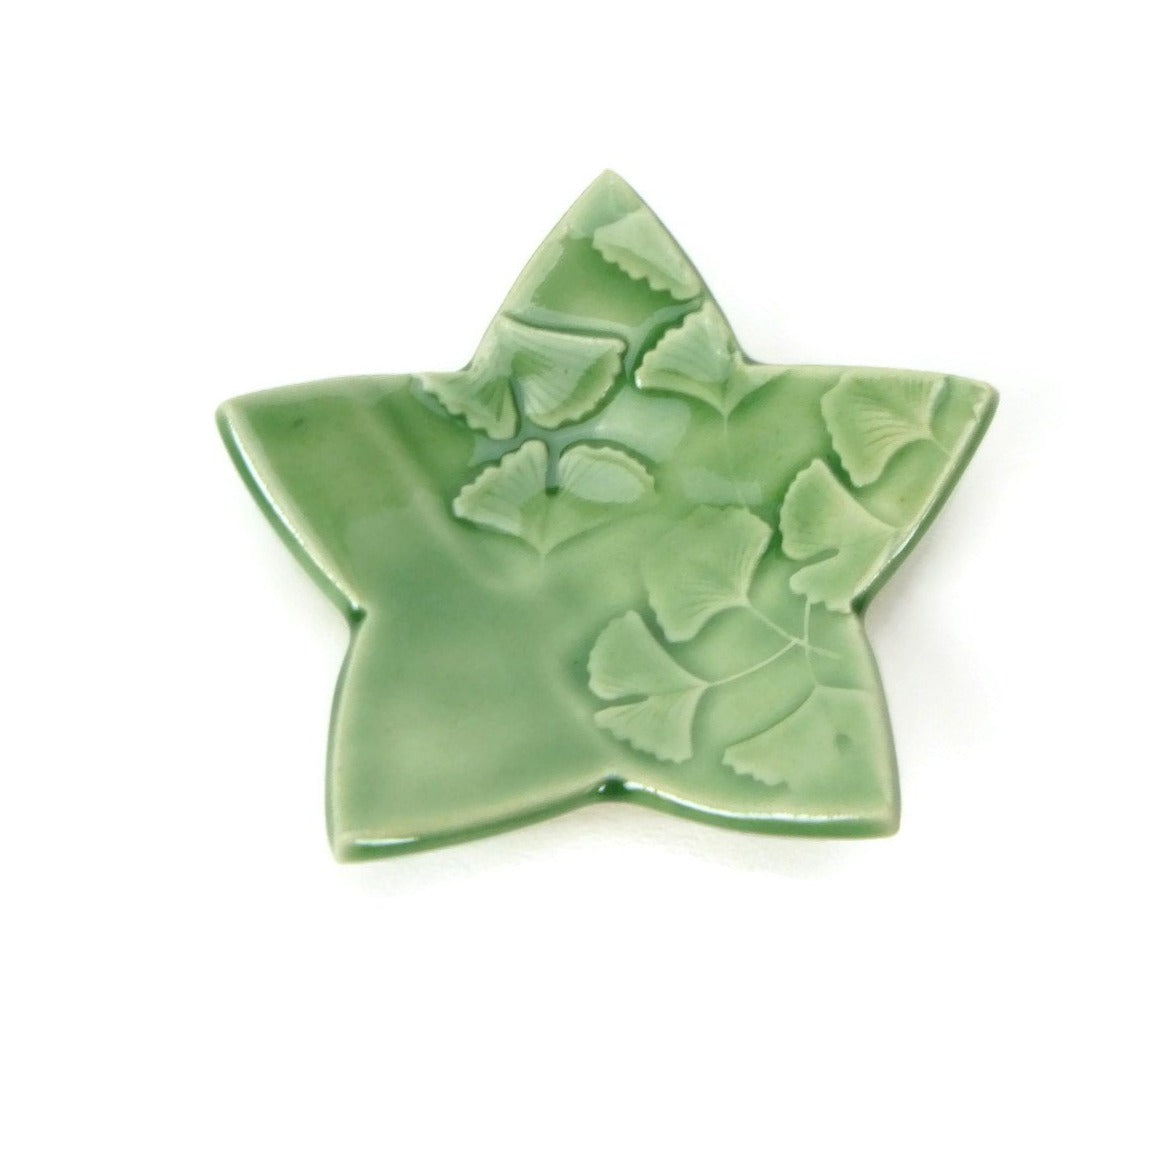 Forest Green Star Shaped Trivet with Ginkgo Pattern